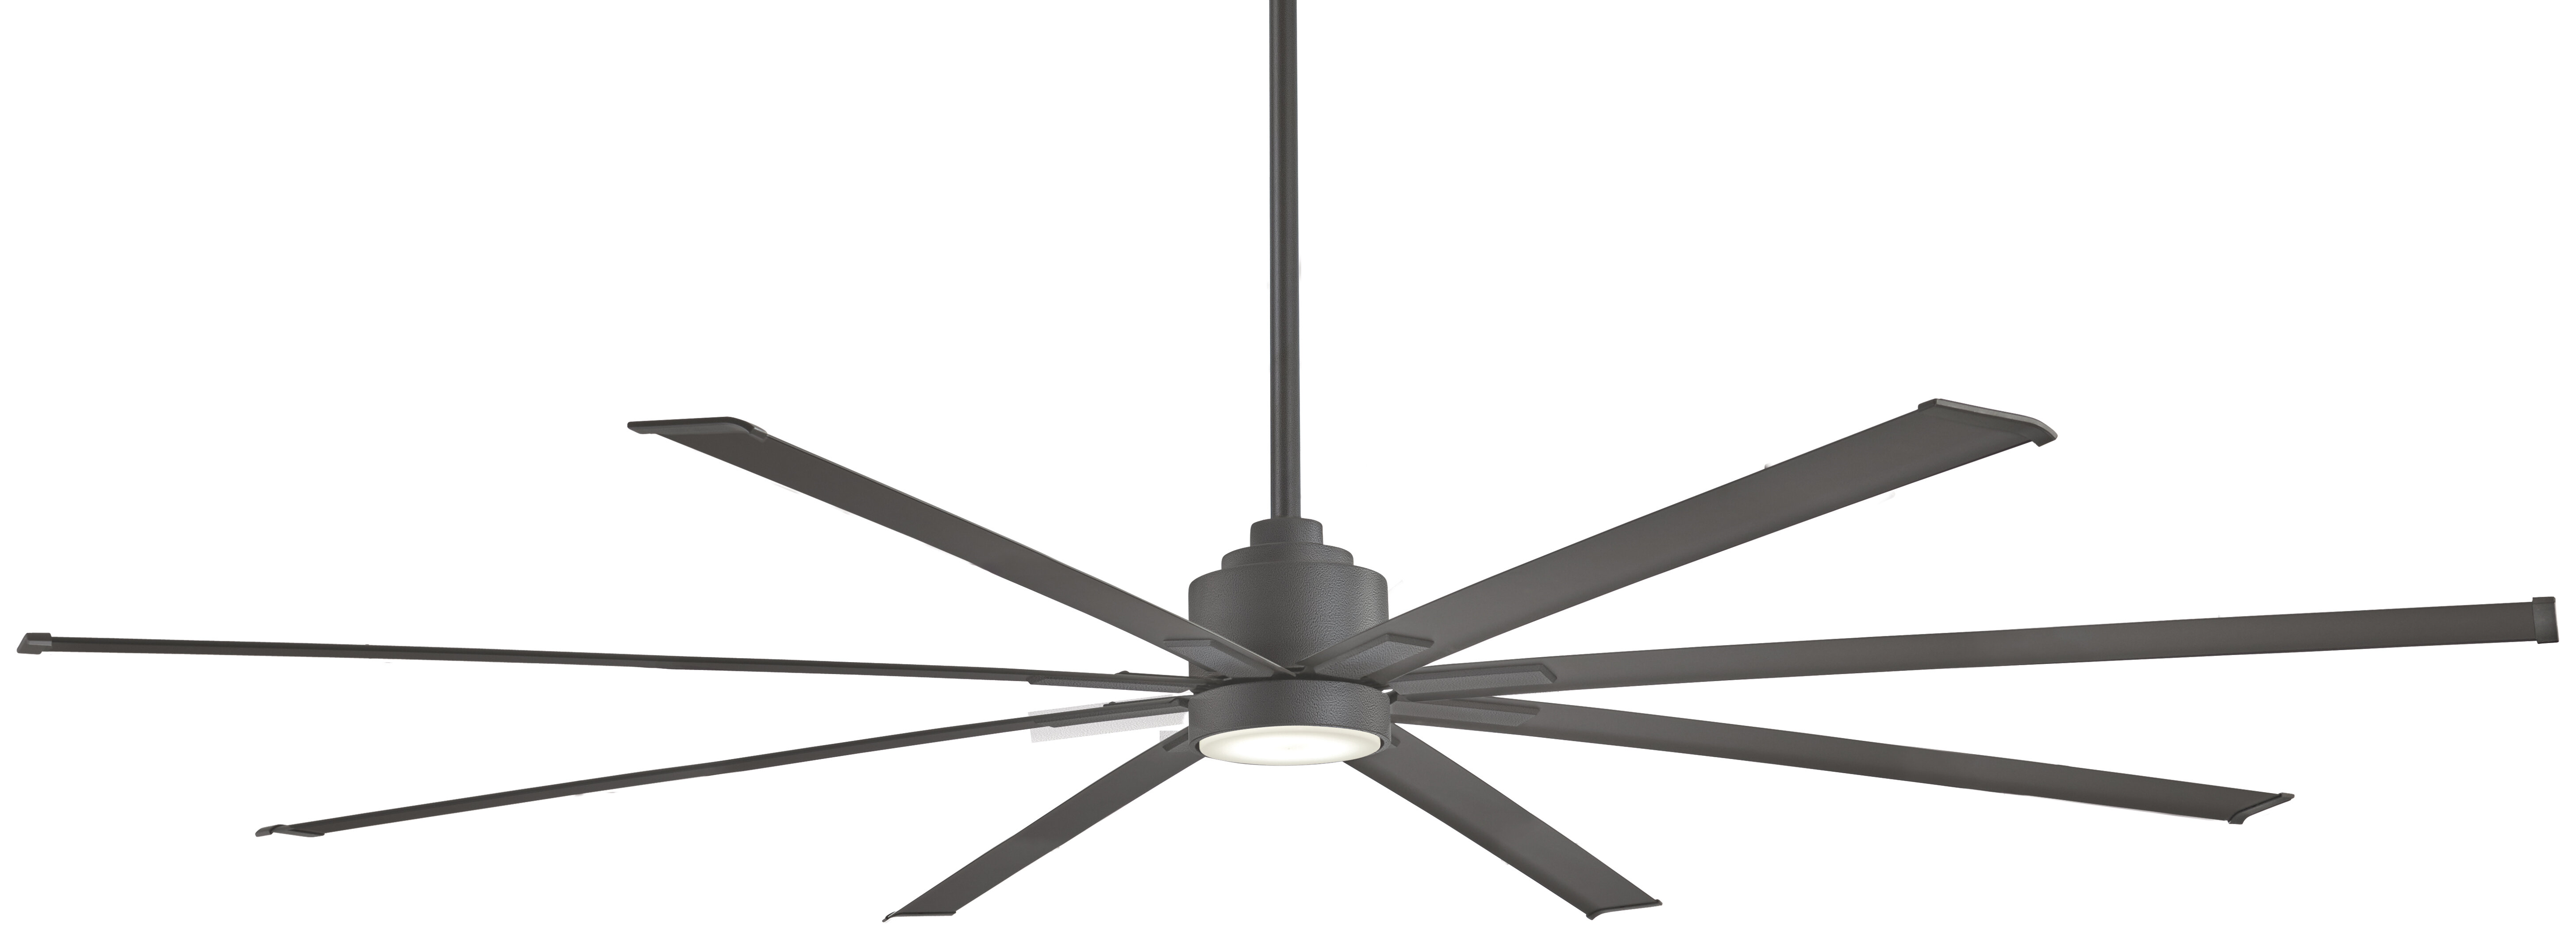 Minka Aire 65 Xtreme 8 Outdoor Ceiling Fan With Remote Reviews Wayfair